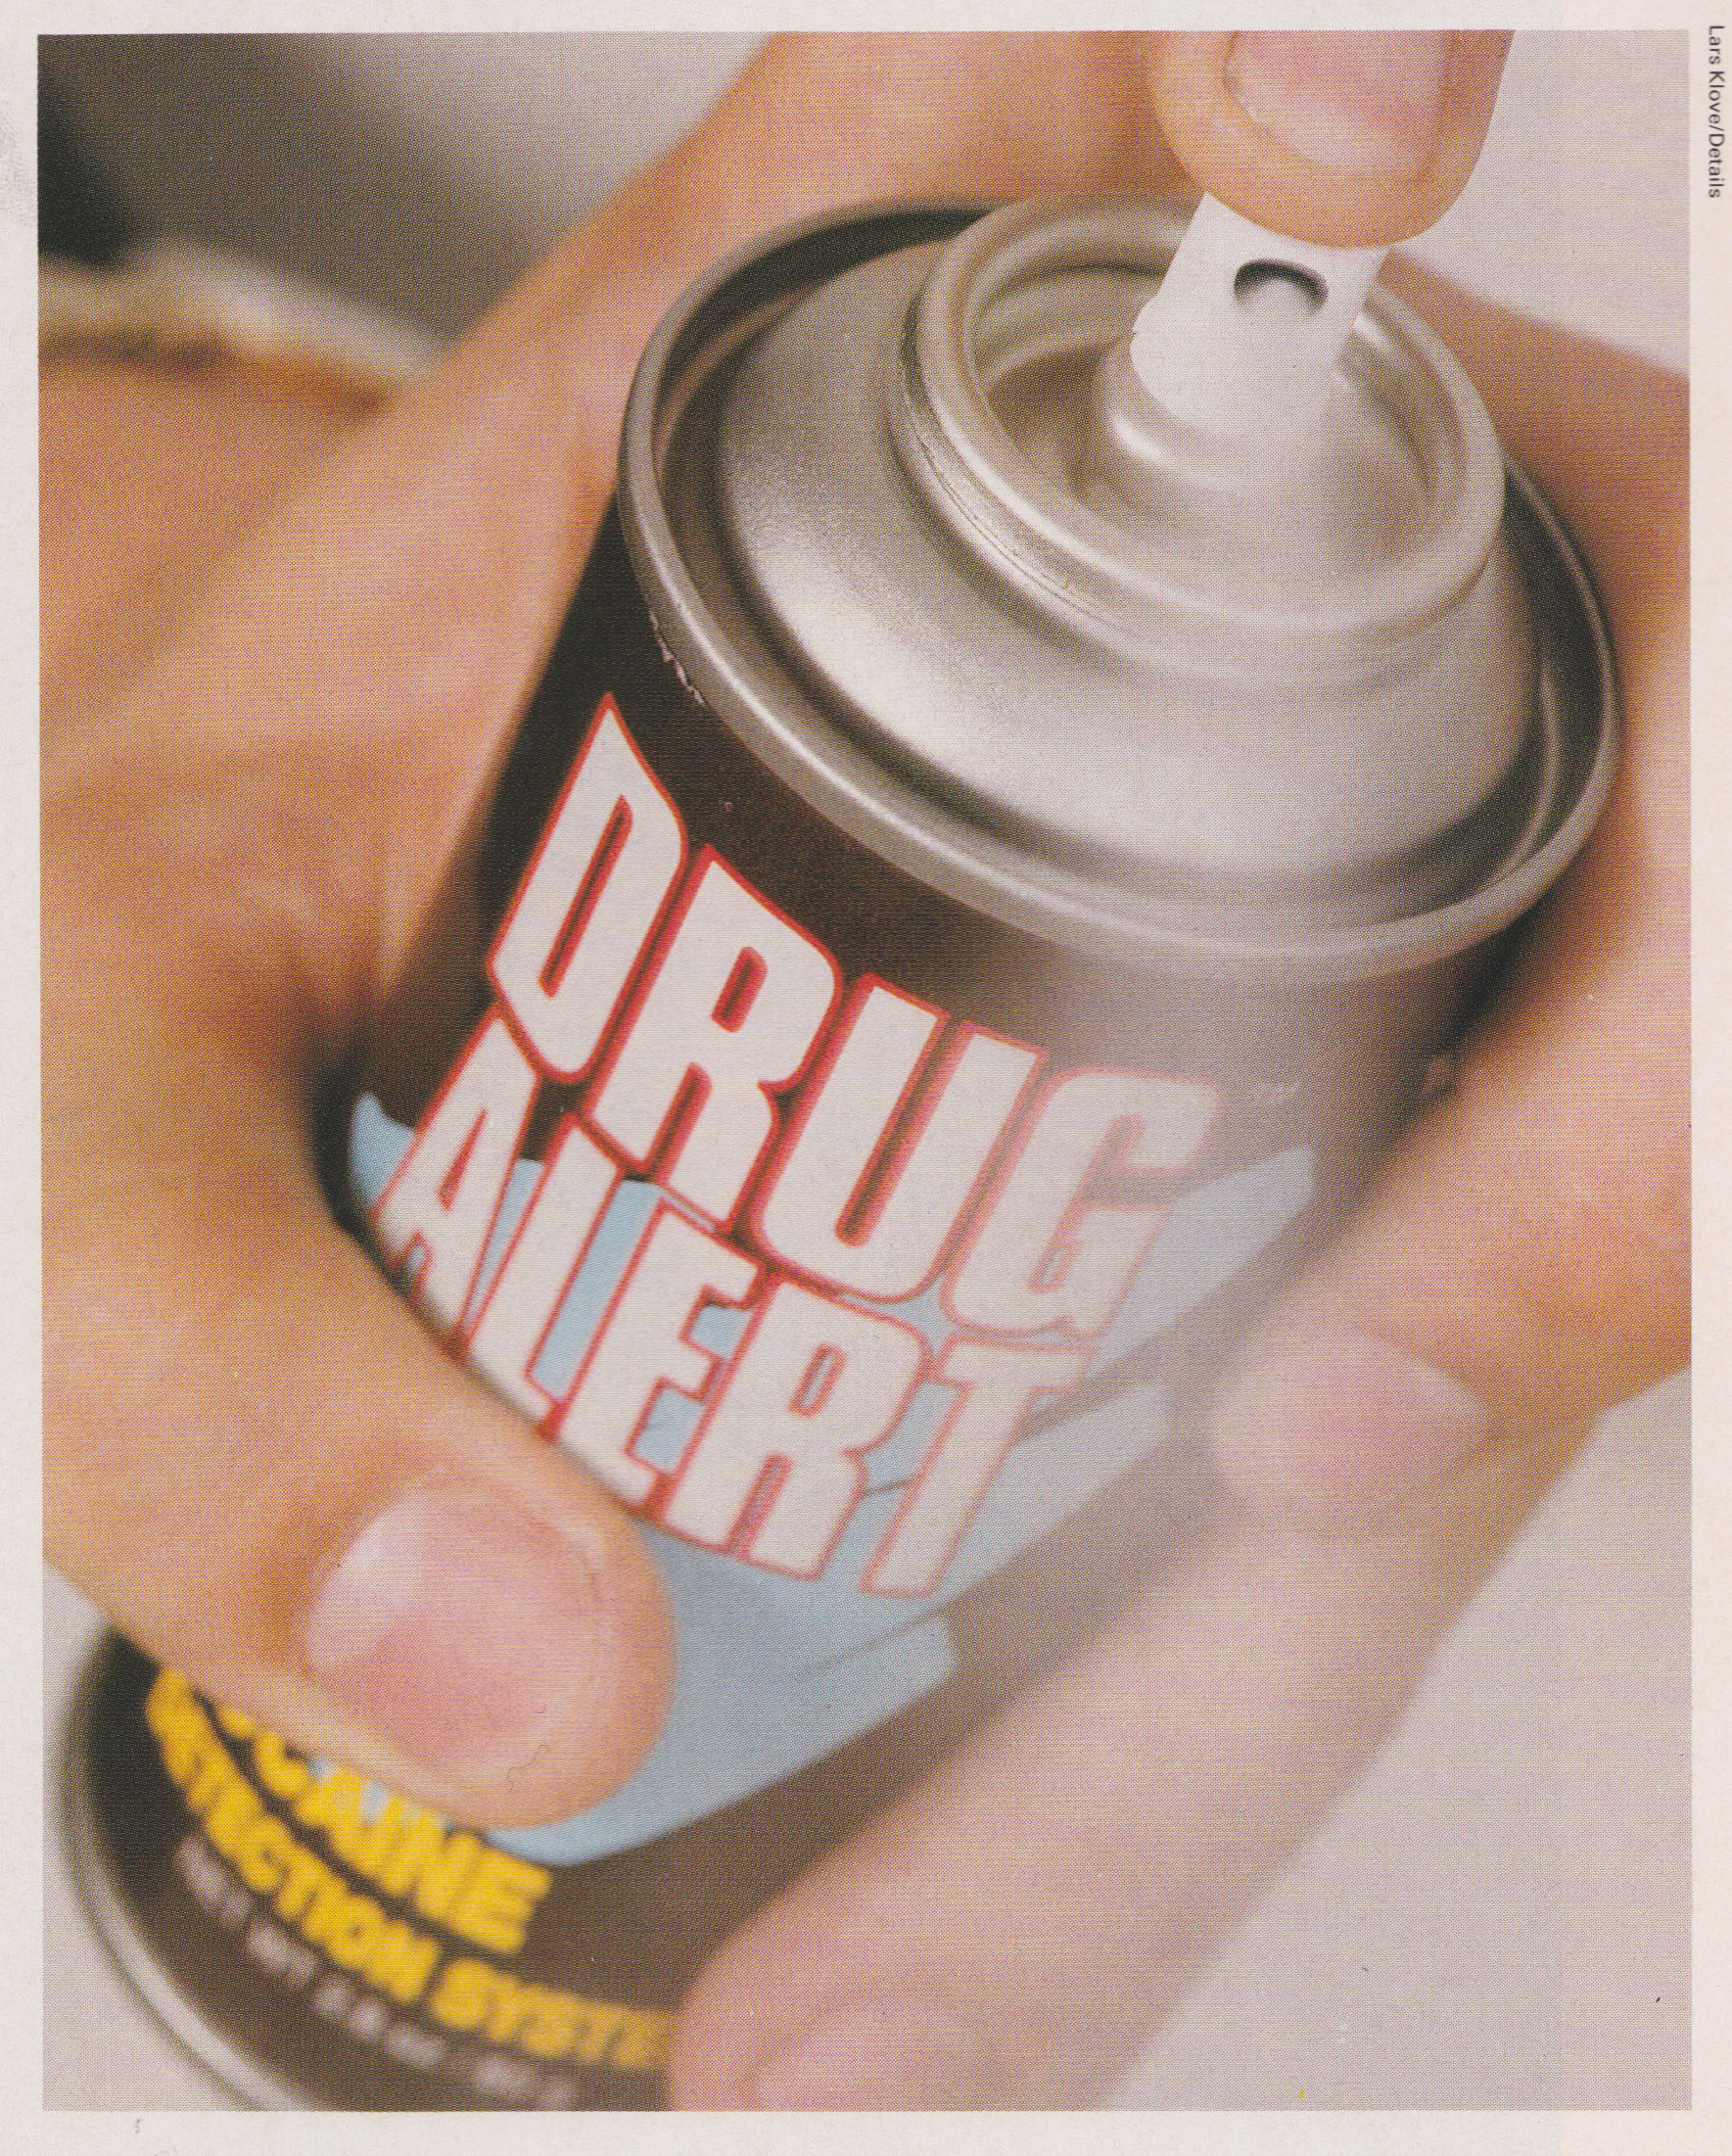 Drug Alert, Spray, Drug Prevention, Cocain, Spray